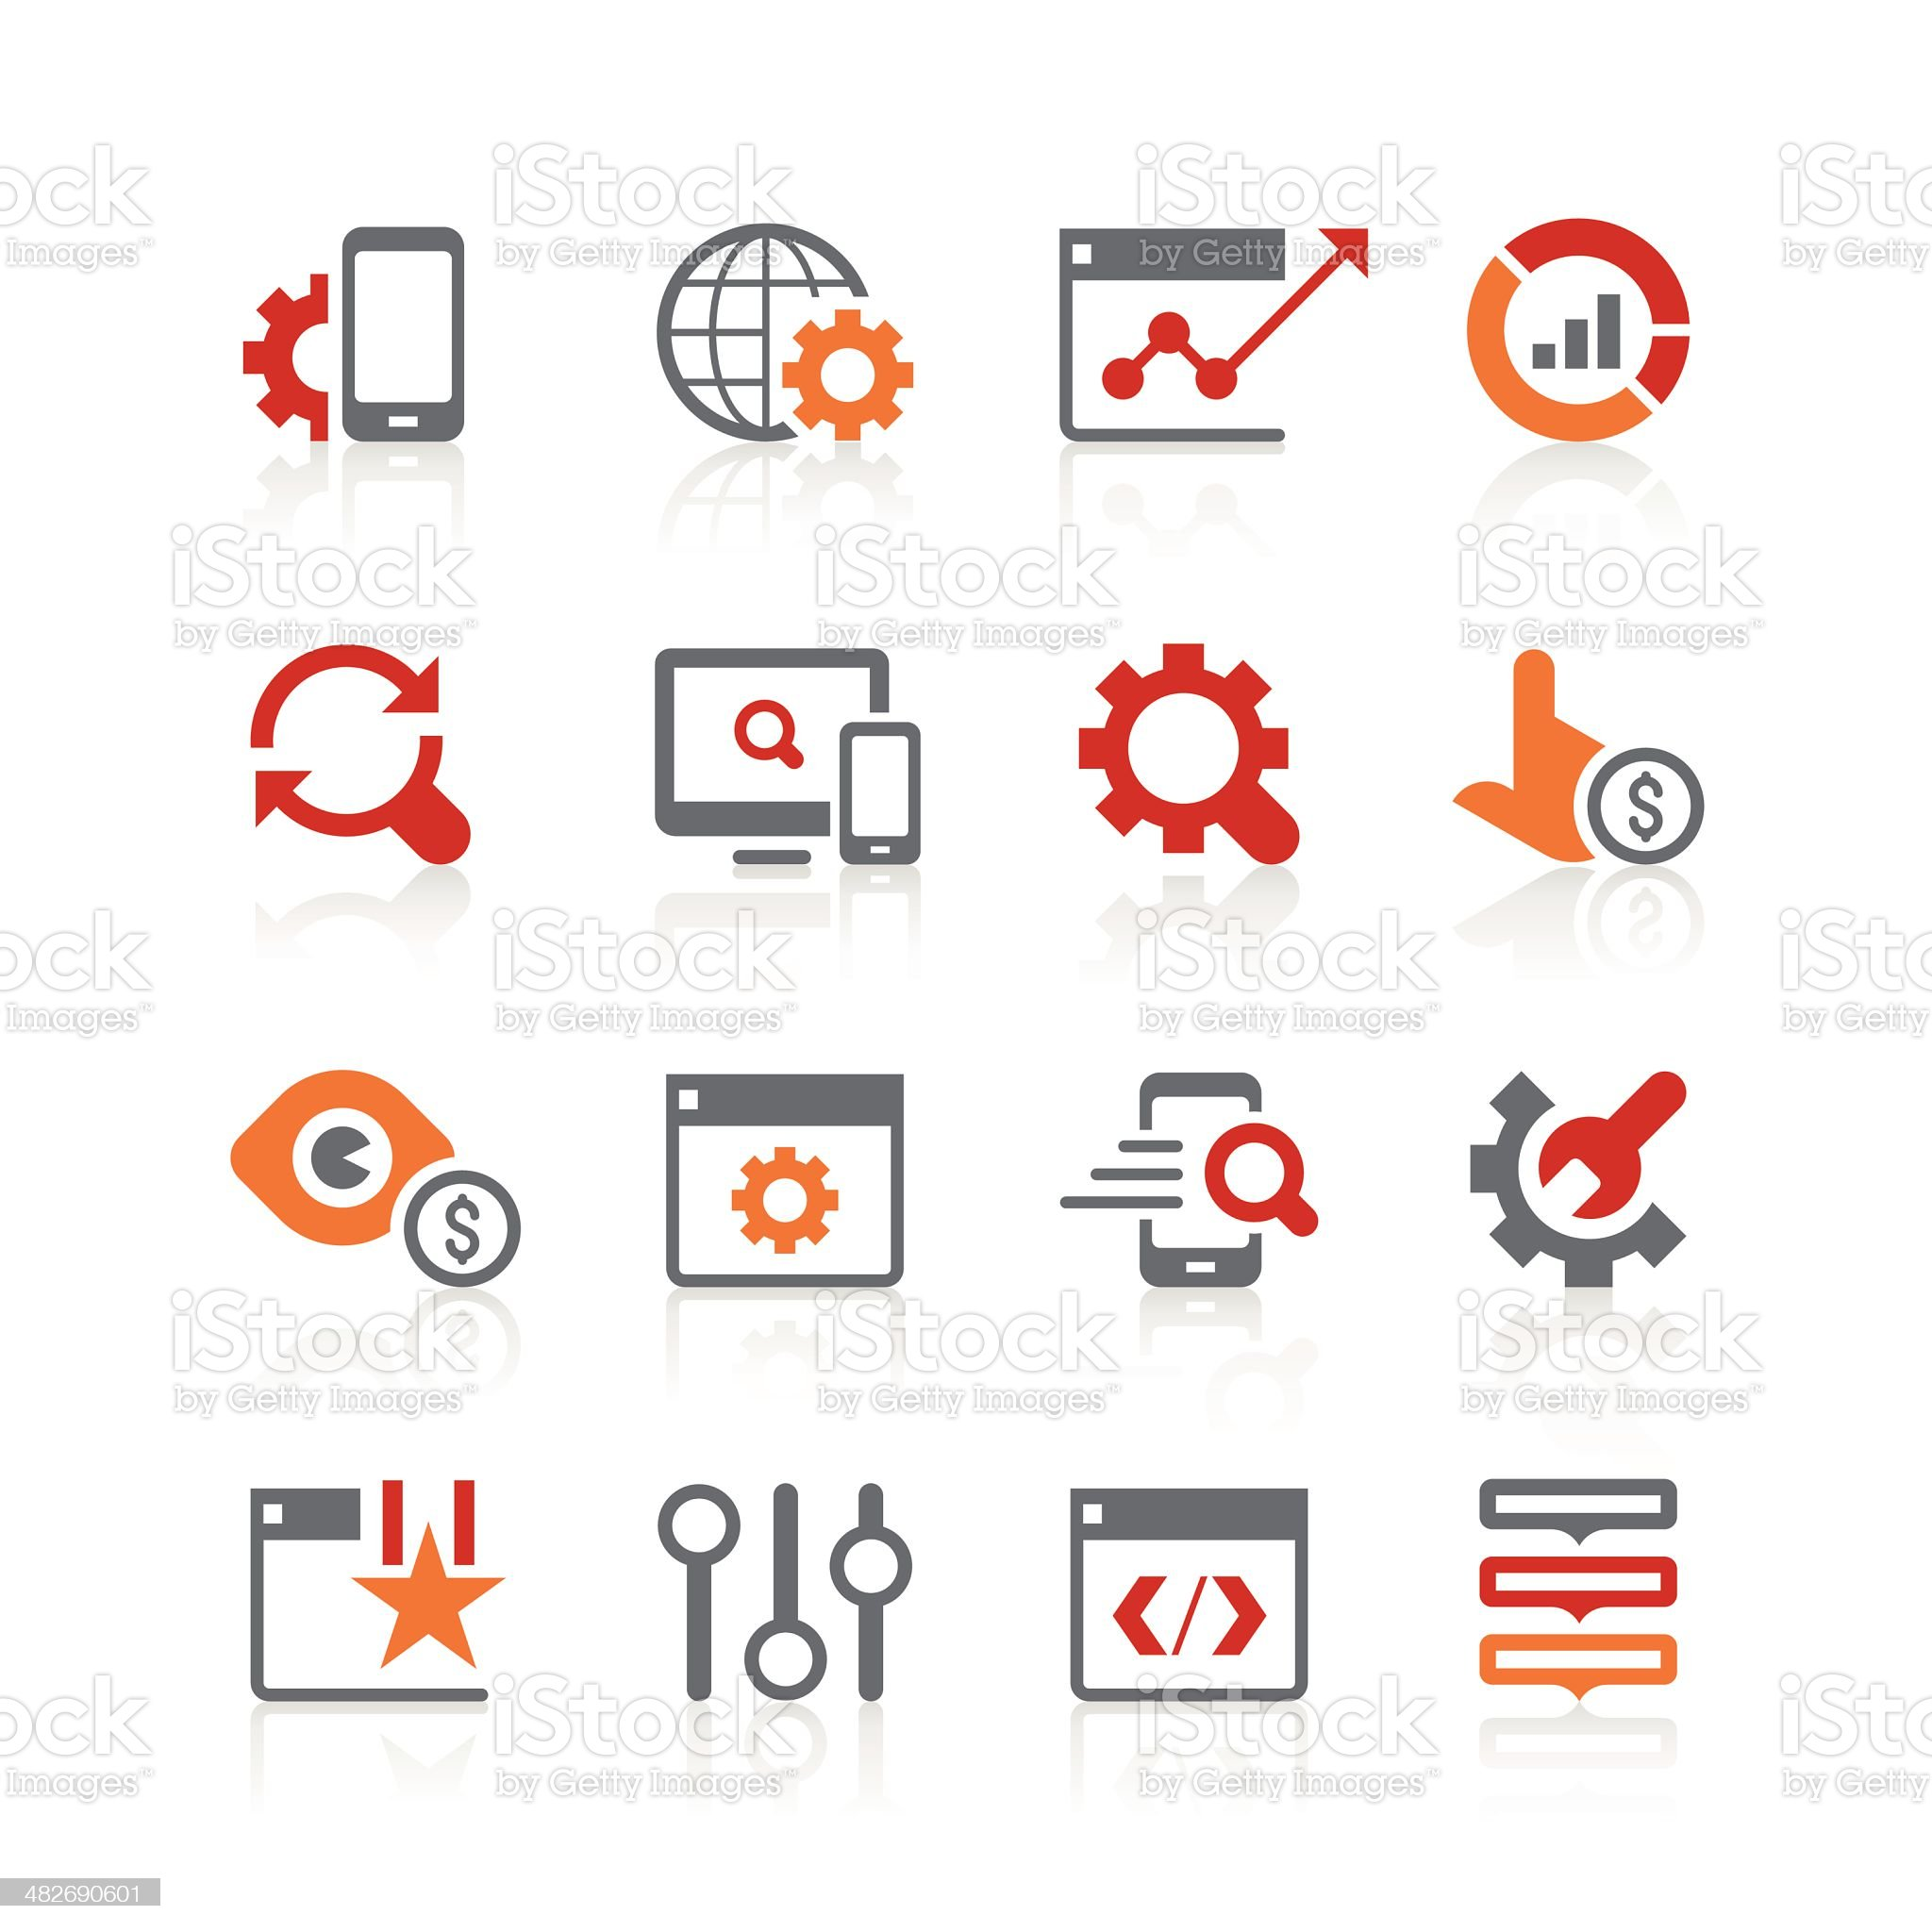 search engine optimisation icons | alto series royalty-free stock vector art